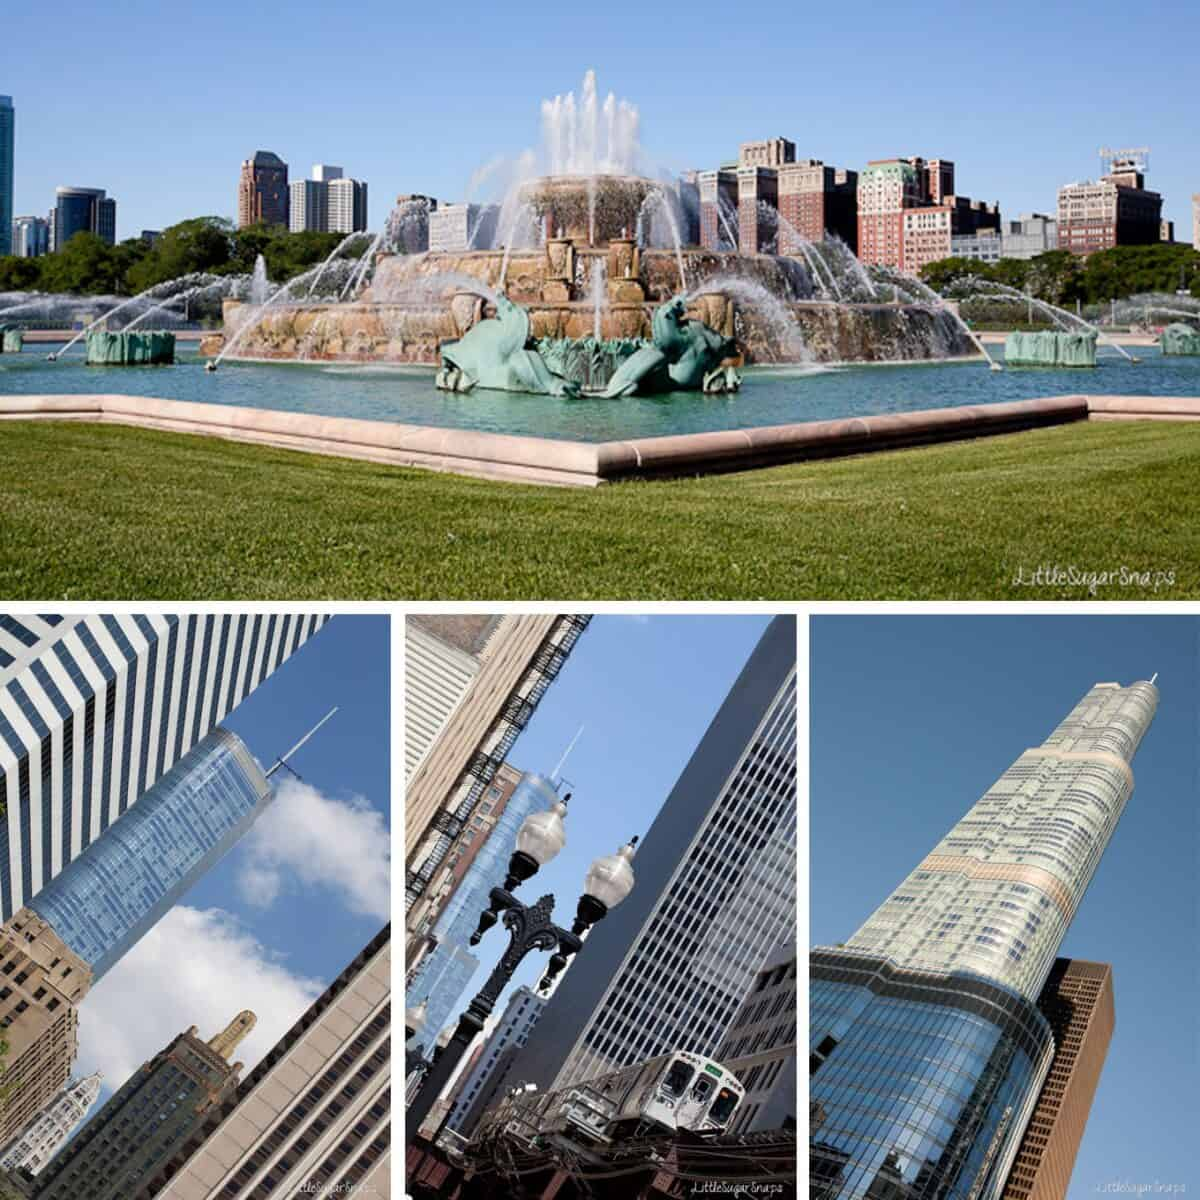 Collage of views around Chicago